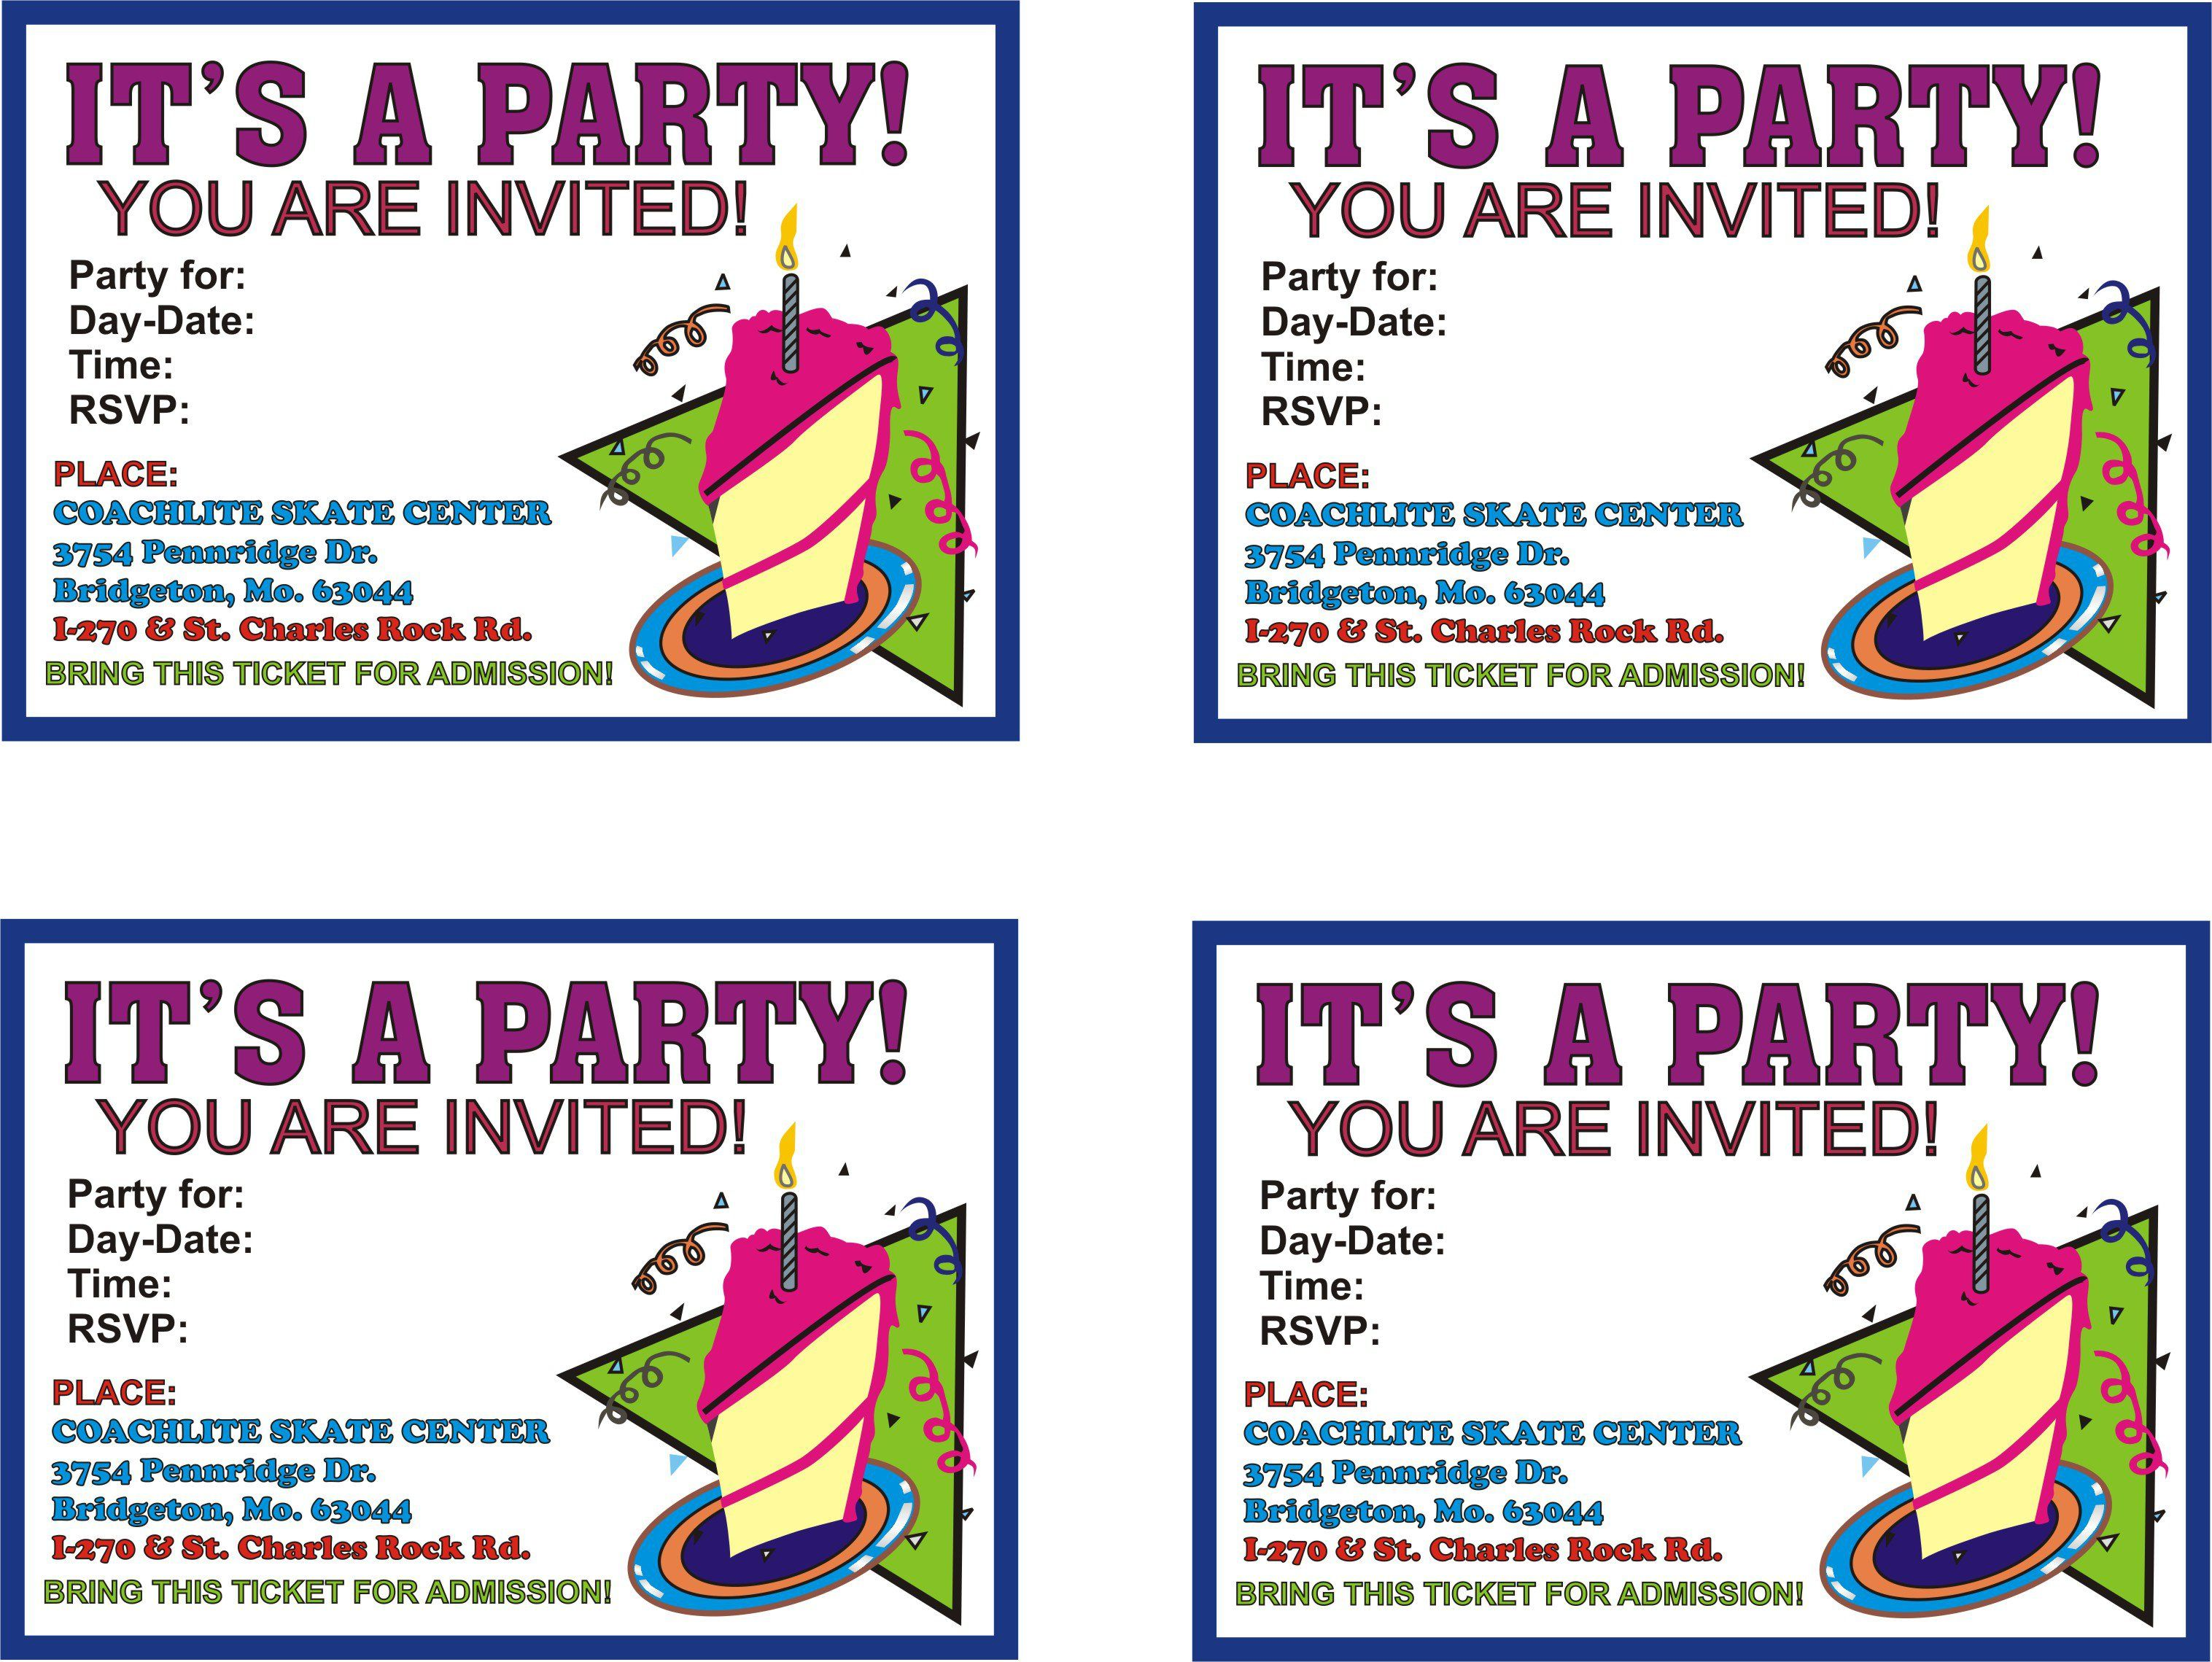 printbirthdayinvitationssingapore birthday invitations